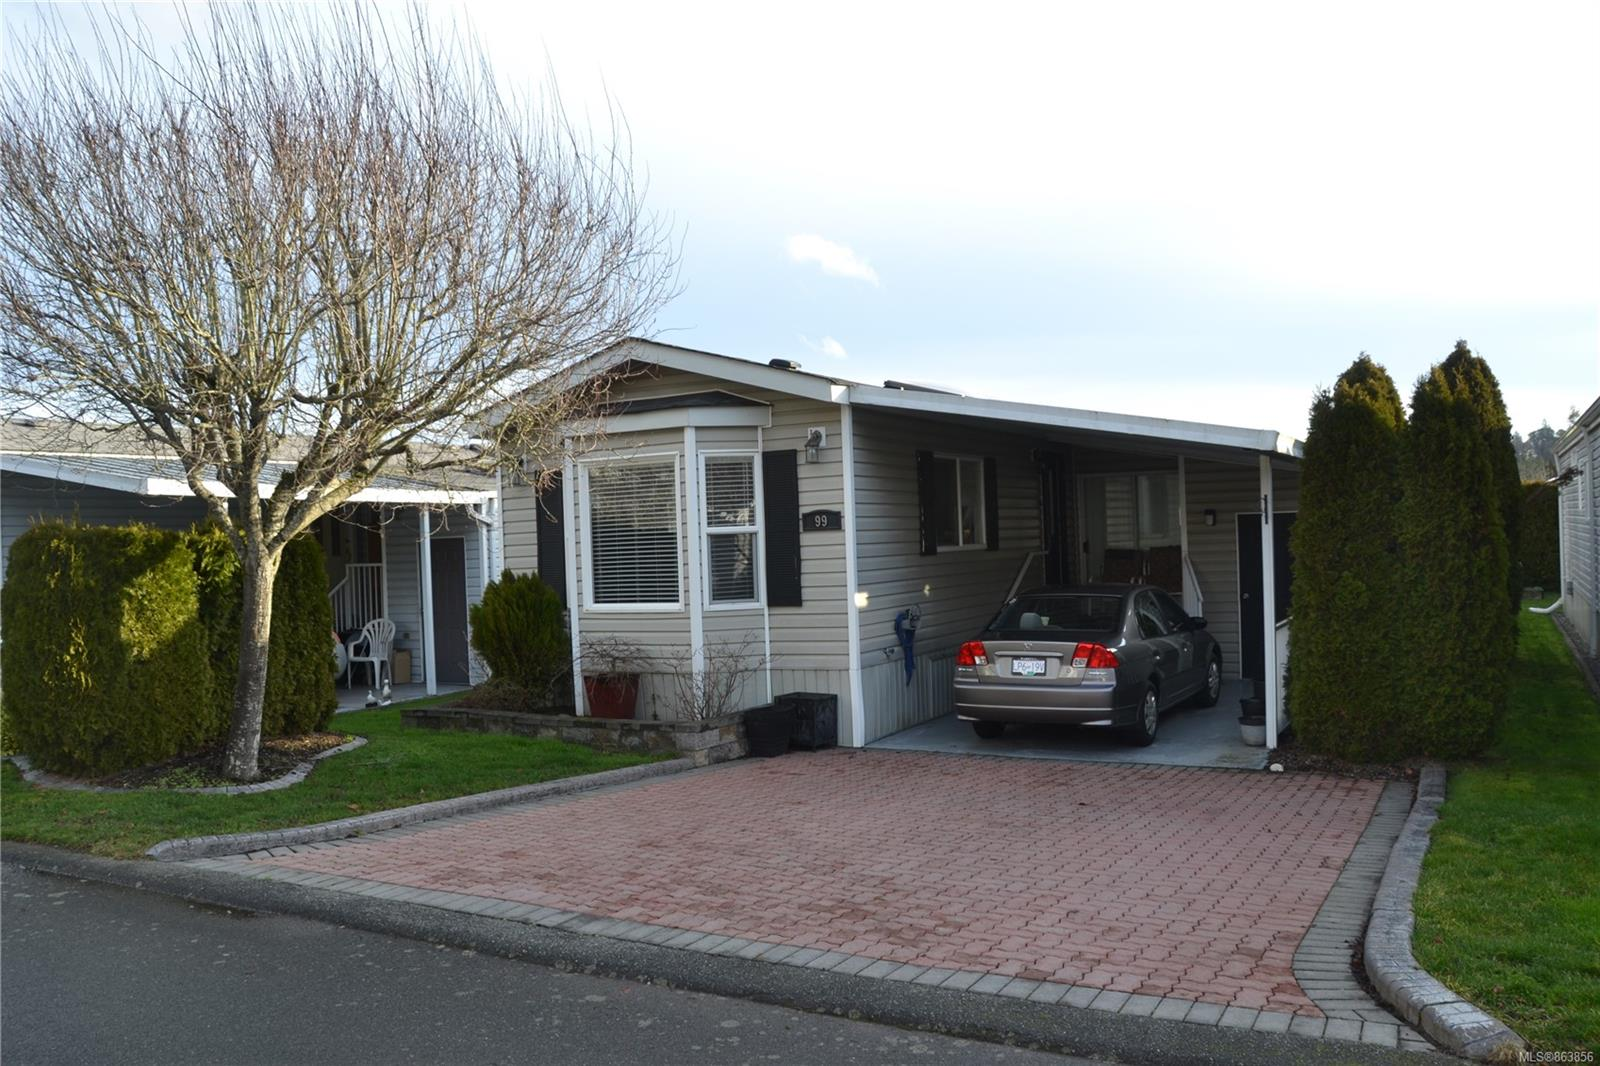 7583 Central Saanich Rd # 99, Central Saanich BC V9A 0A1